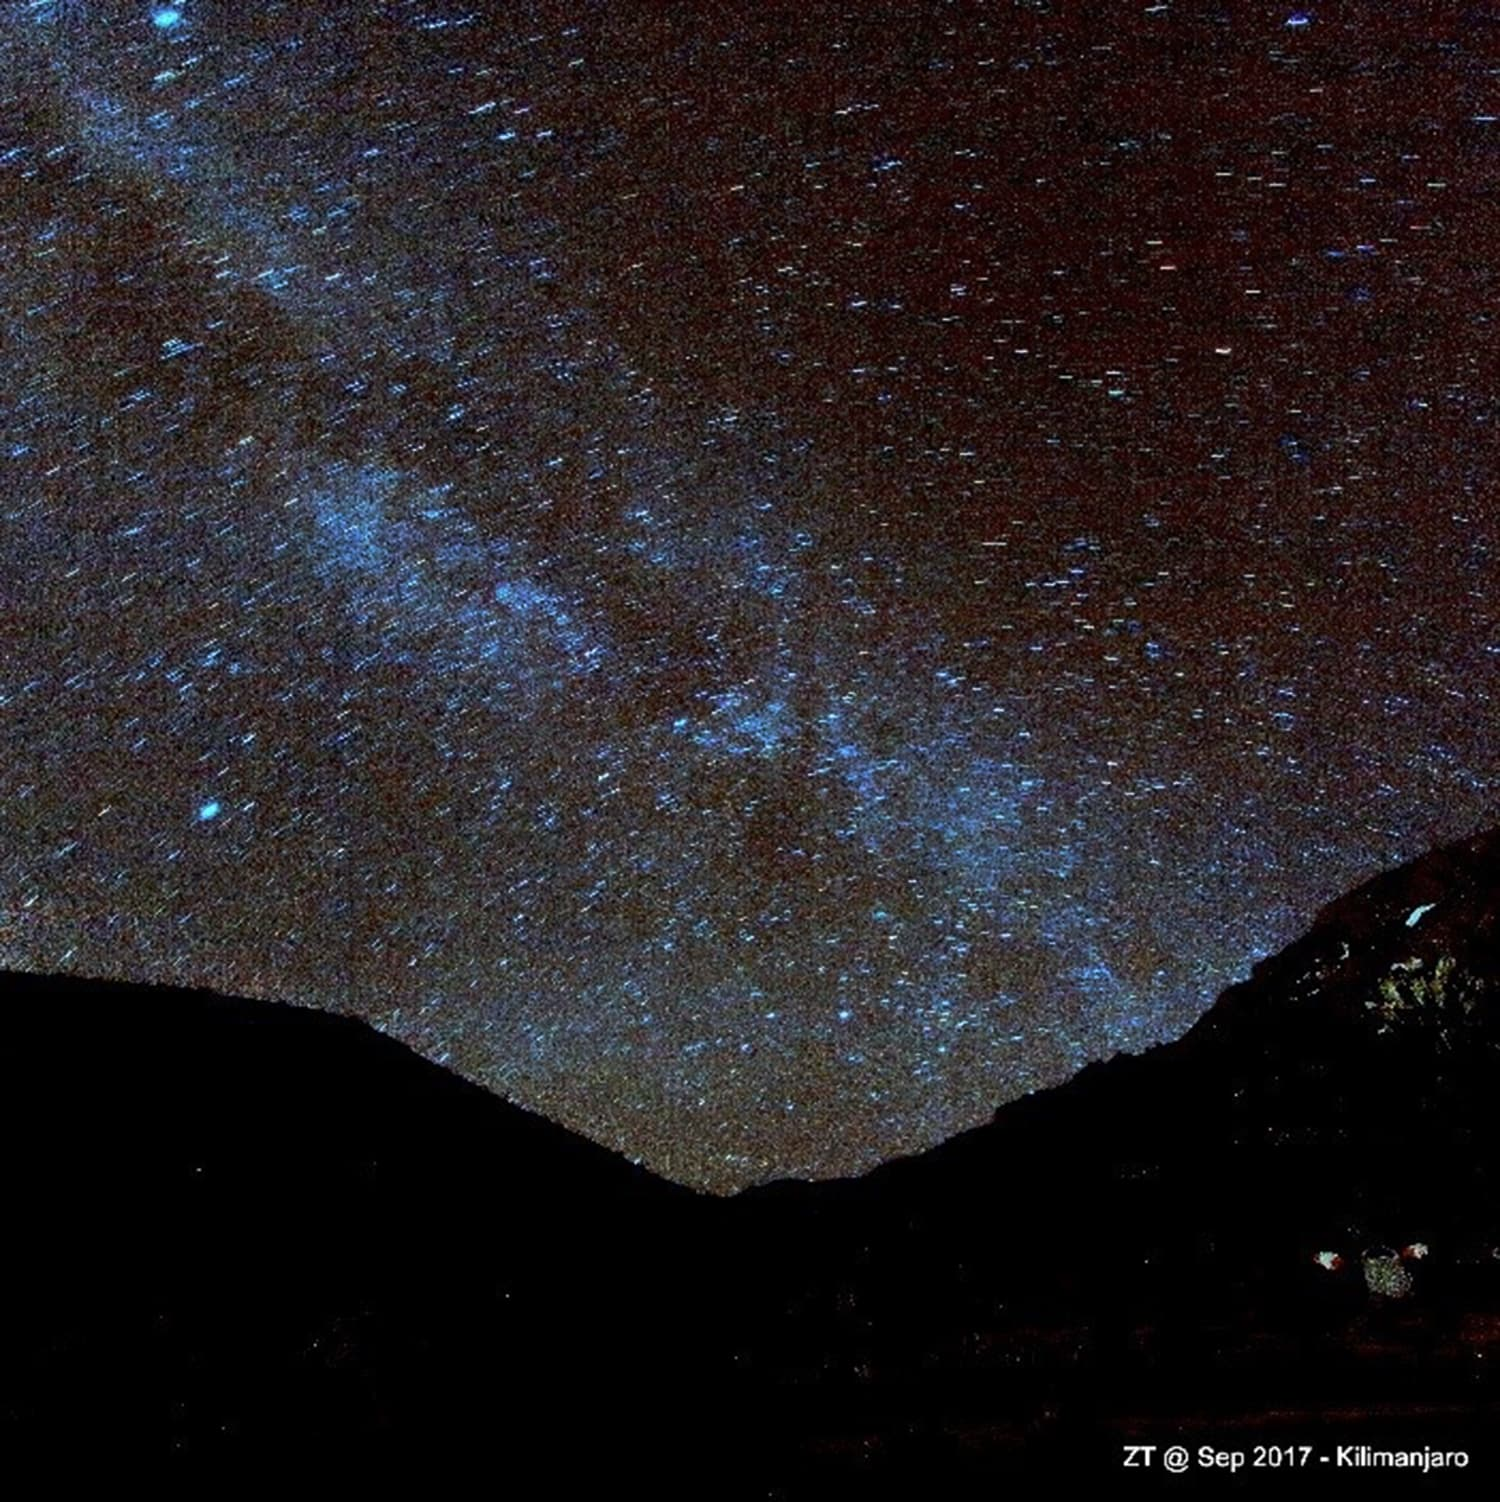 The starry night at the Shira plateau.